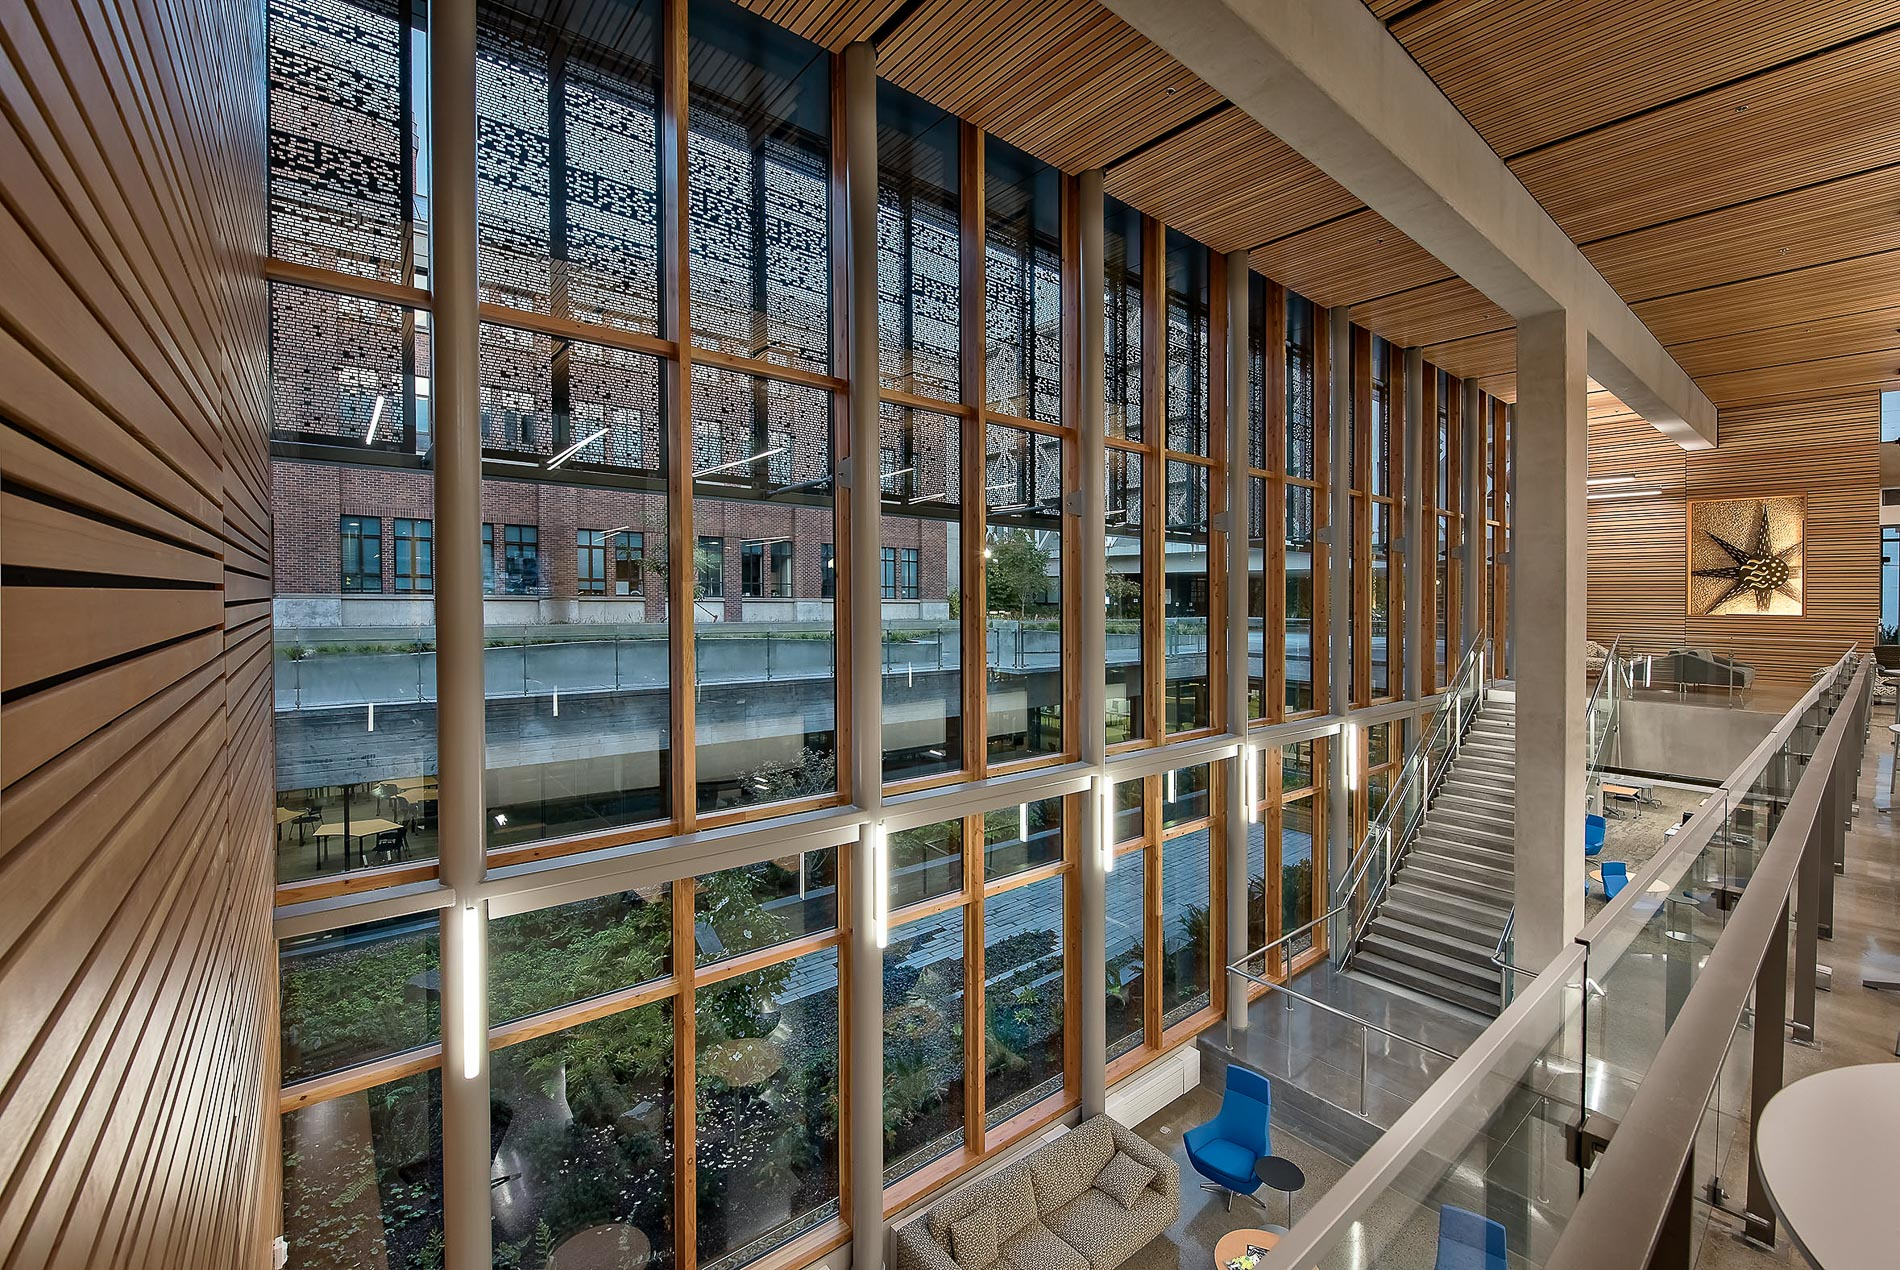 Allan Price Science Commons, University of Oregon / 1